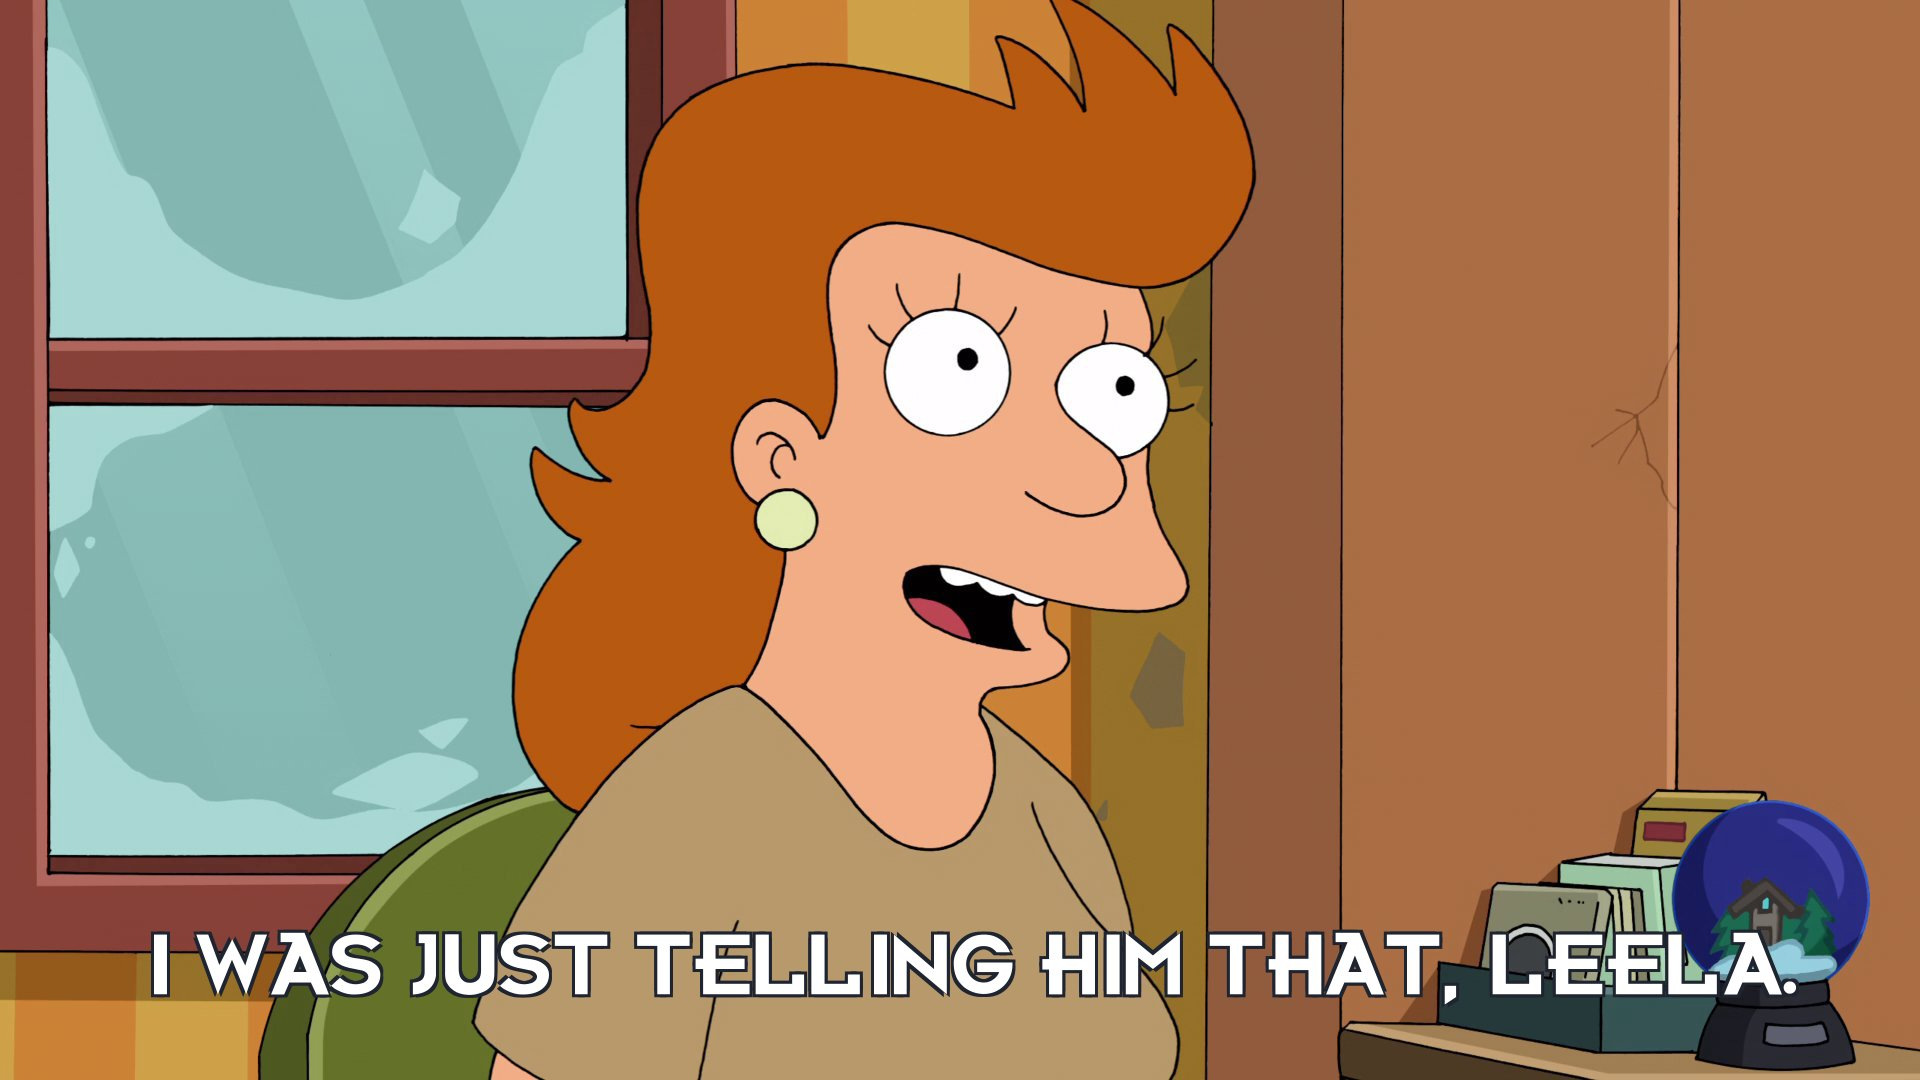 Fry's mother: I was just telling him that, Leela.